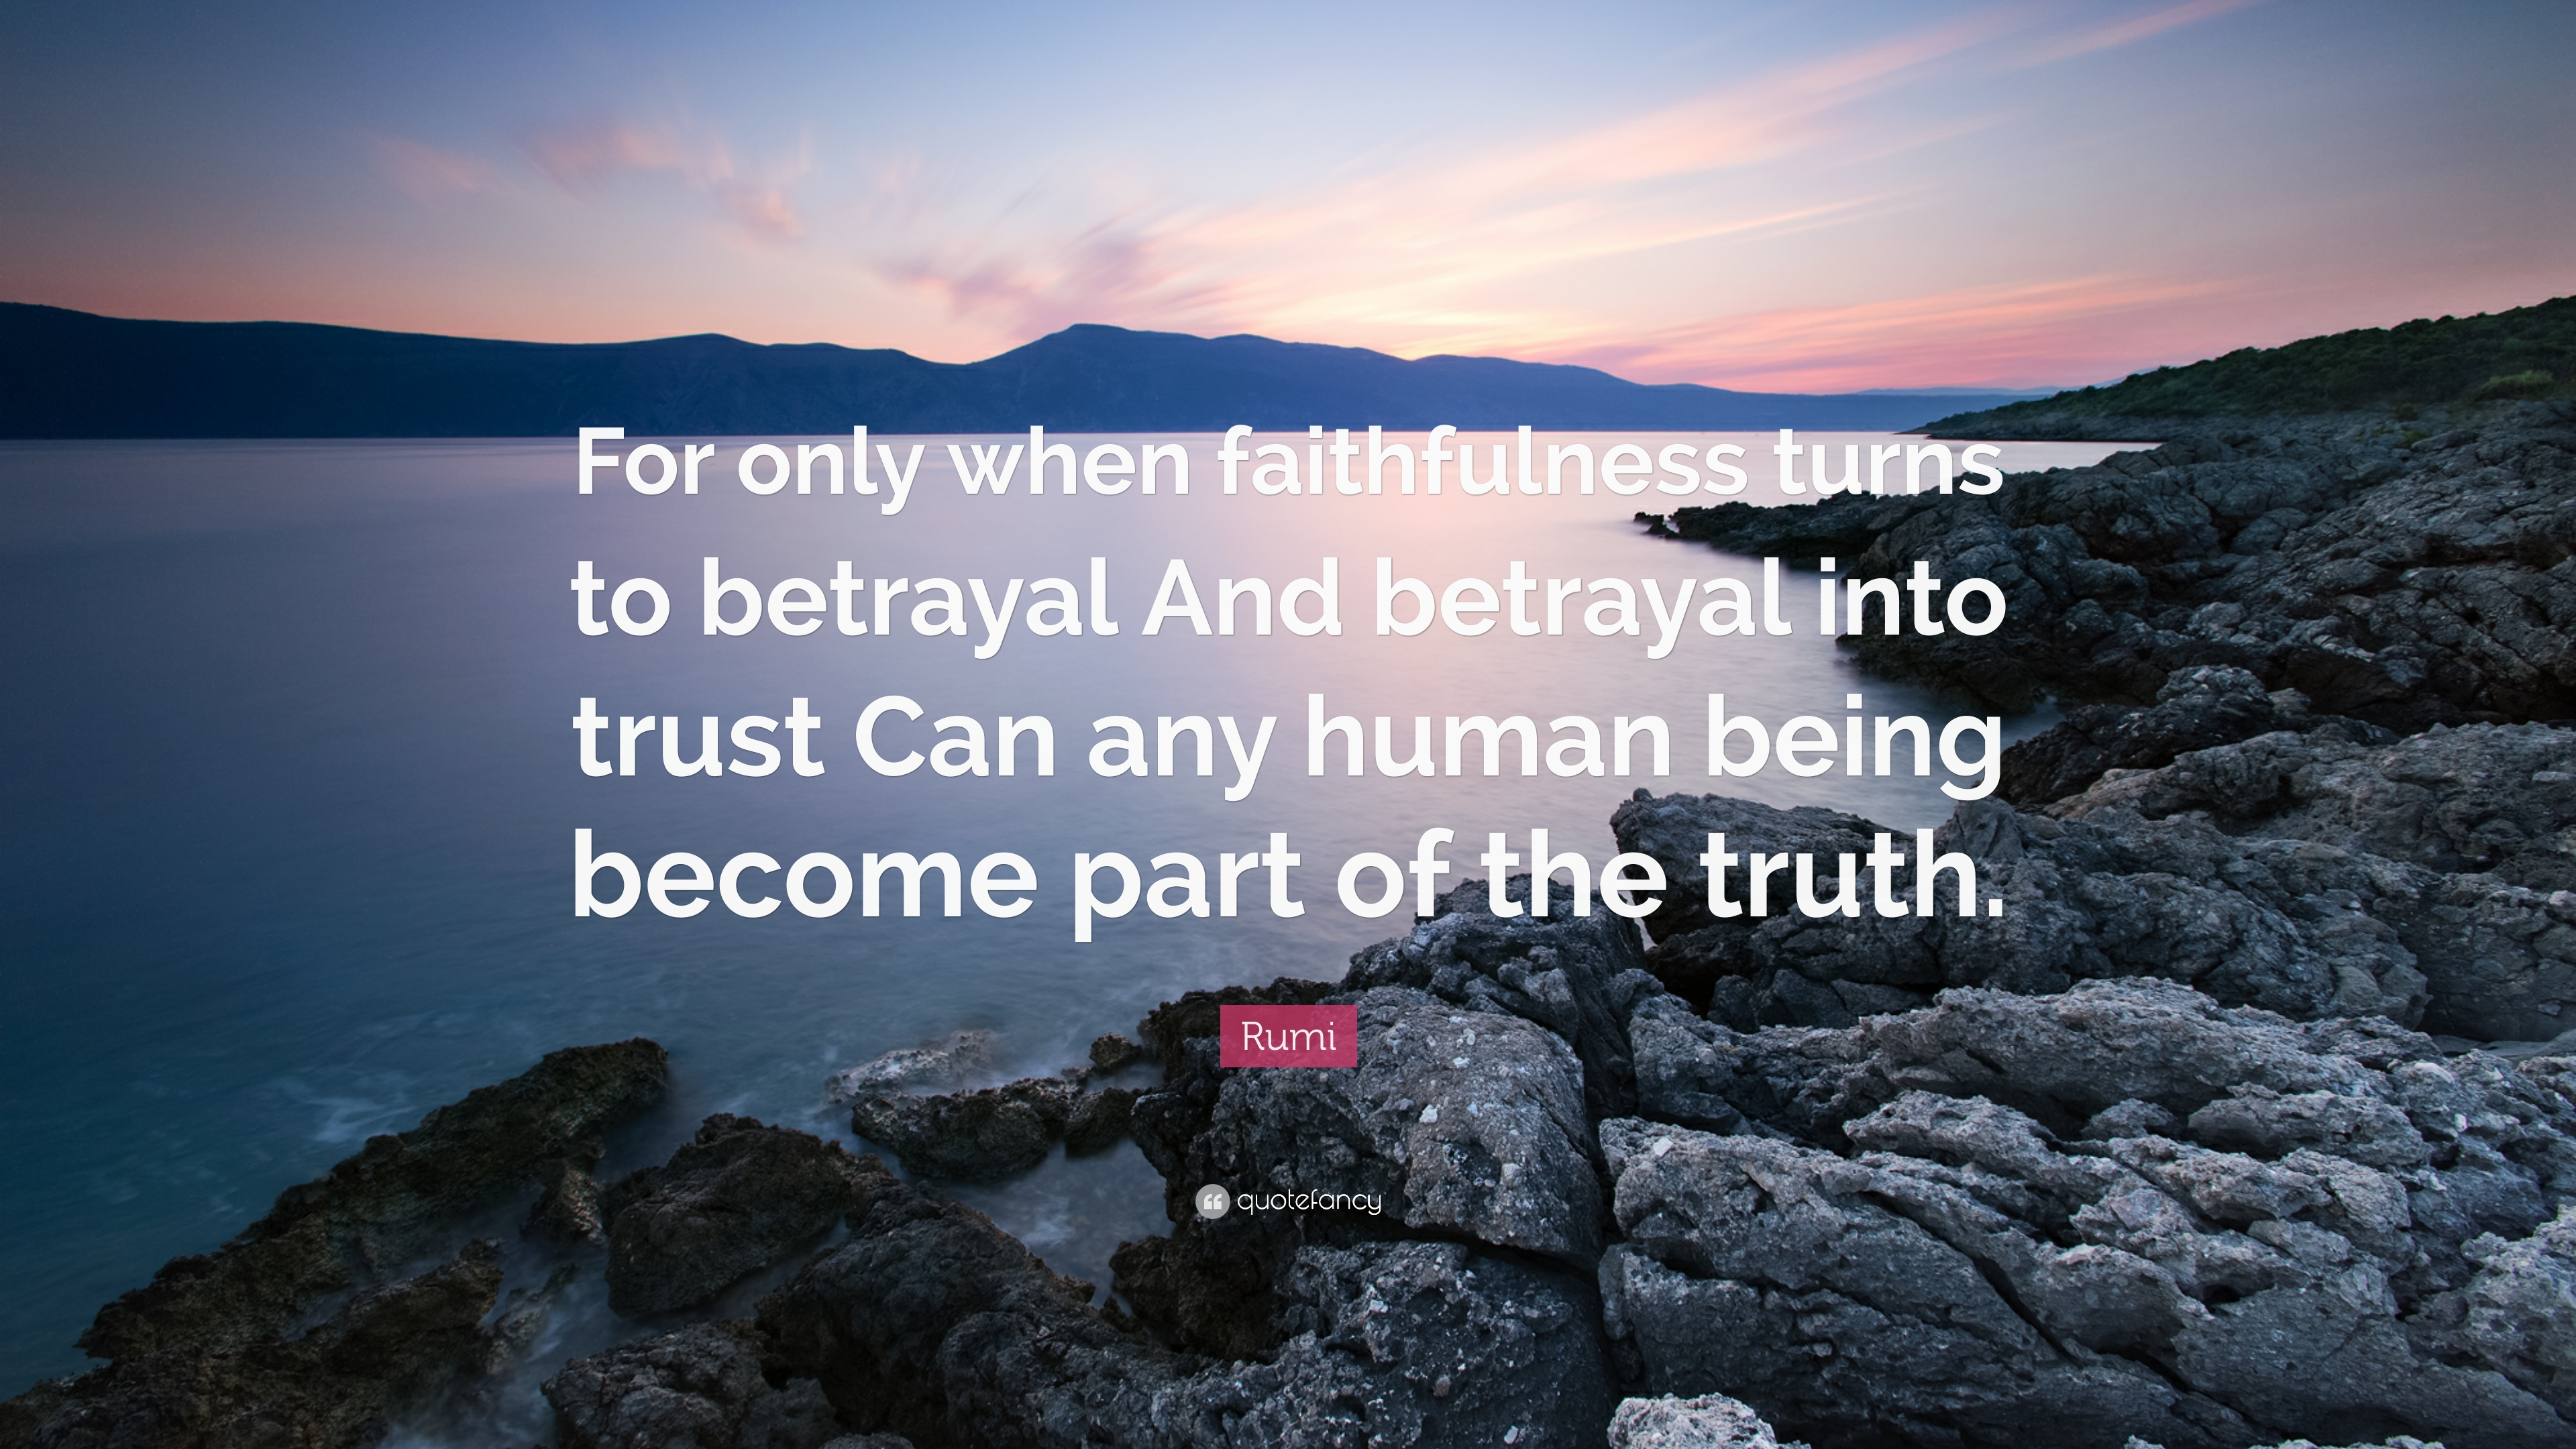 Quotes on betrayal and trust - Betrayal Quotes For Only When Faithfulness Turns To Betrayal And Betrayal Into Trust Can